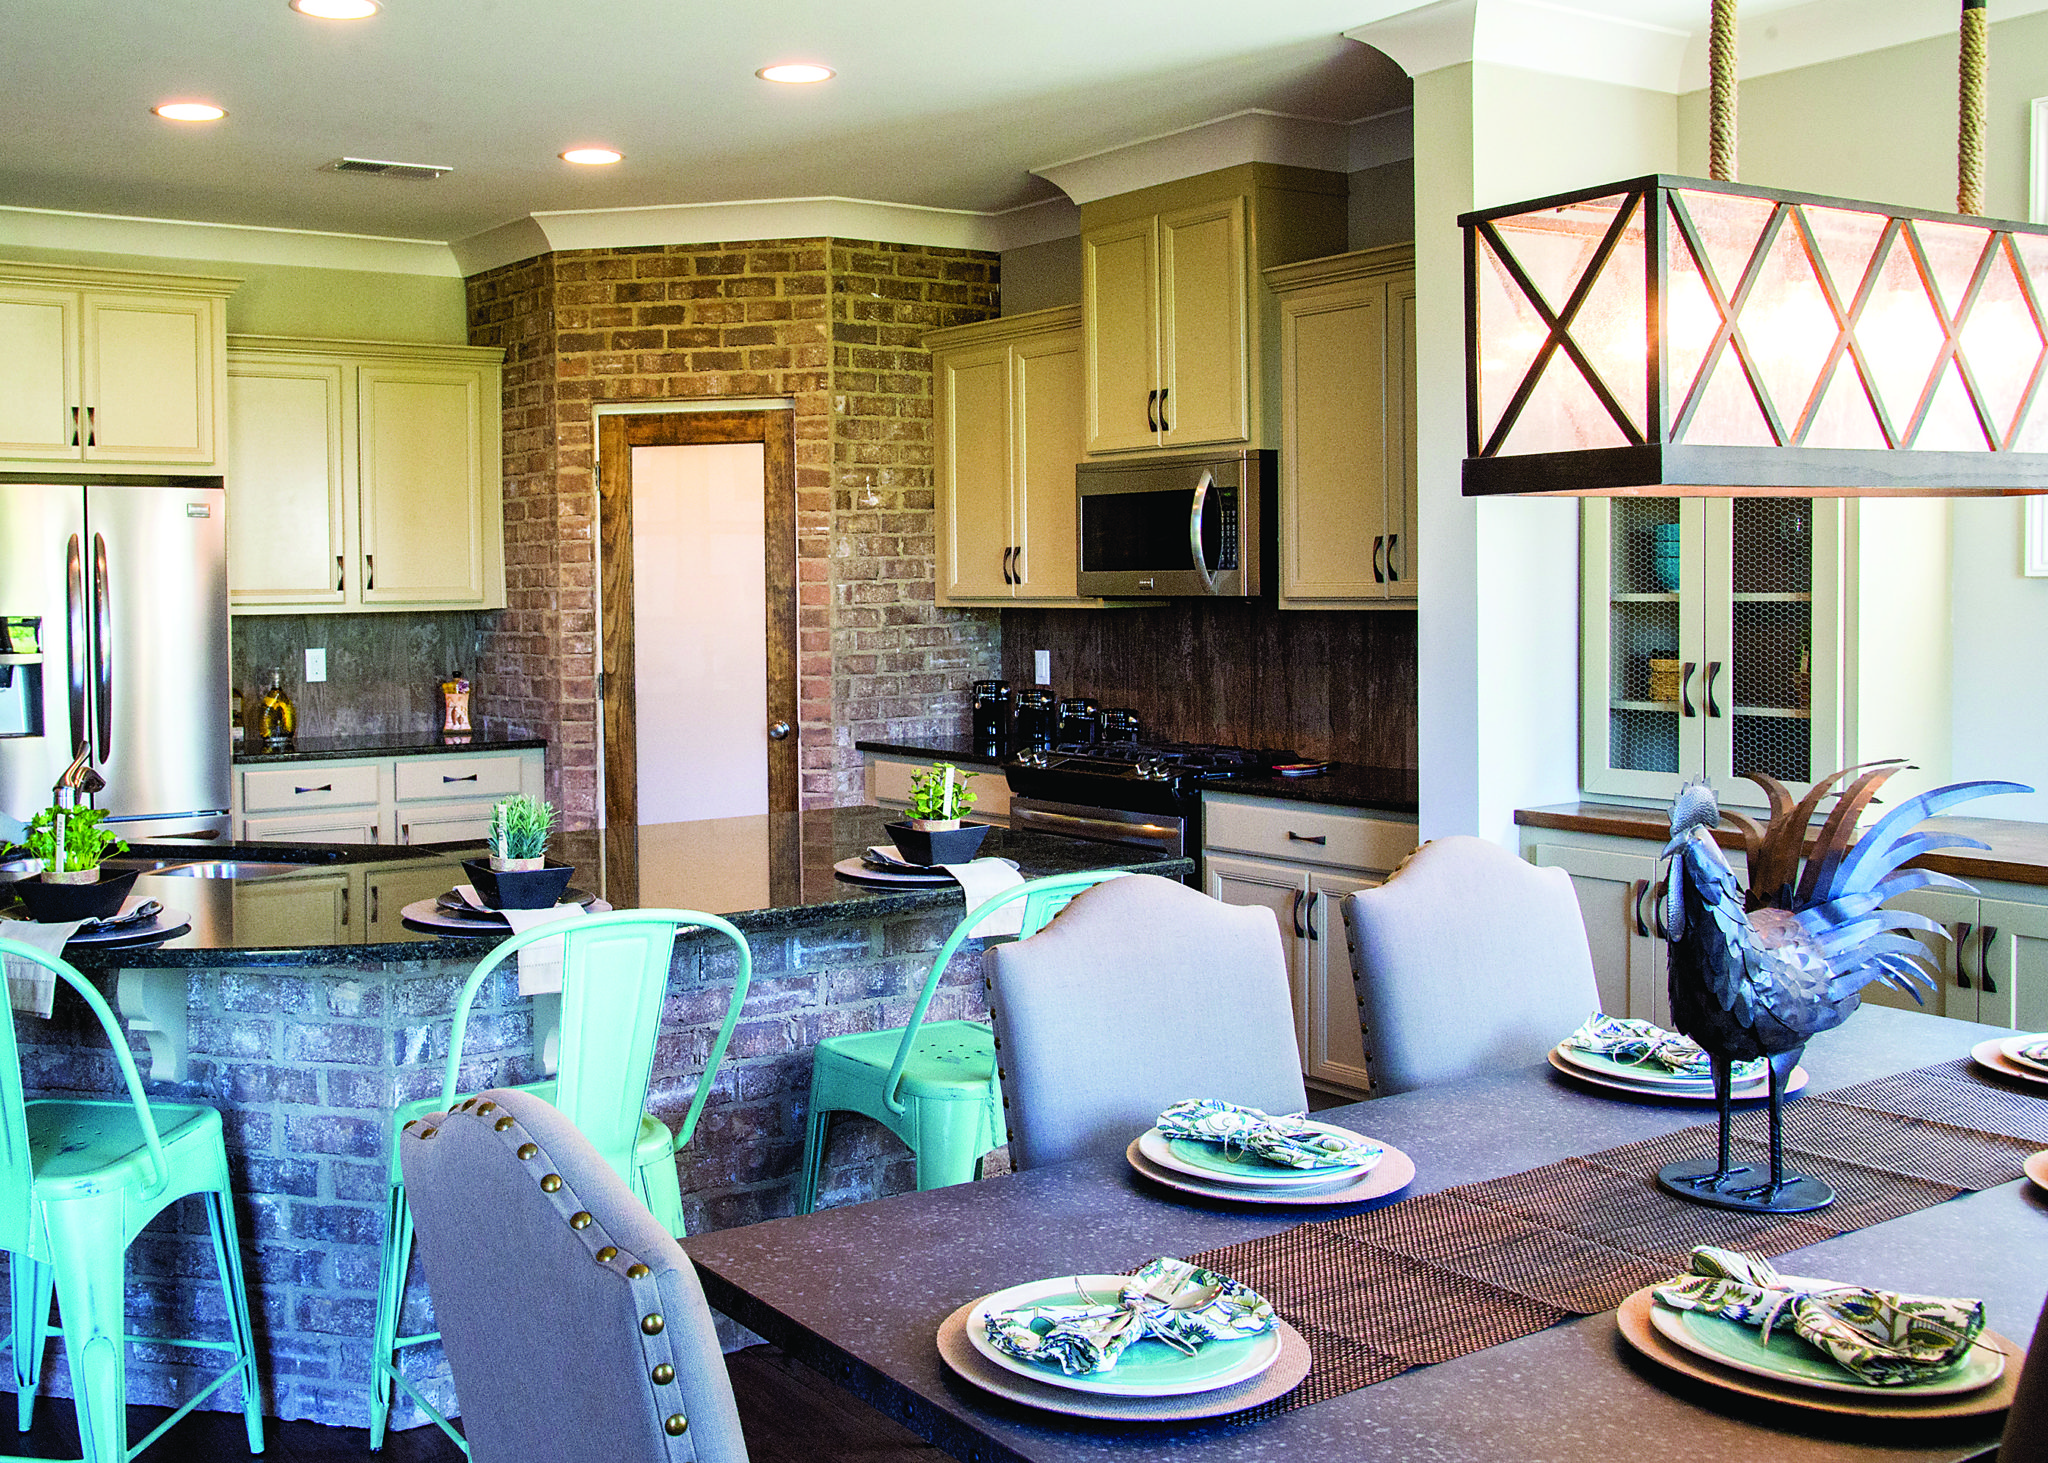 Real brick was used as a heavy accent in the kitchen of the Miner model home   The pantry was built with a brick inlay and the island is also bricked. Industrial Chic  Liberty Park Model Home Draws on Area s Mining